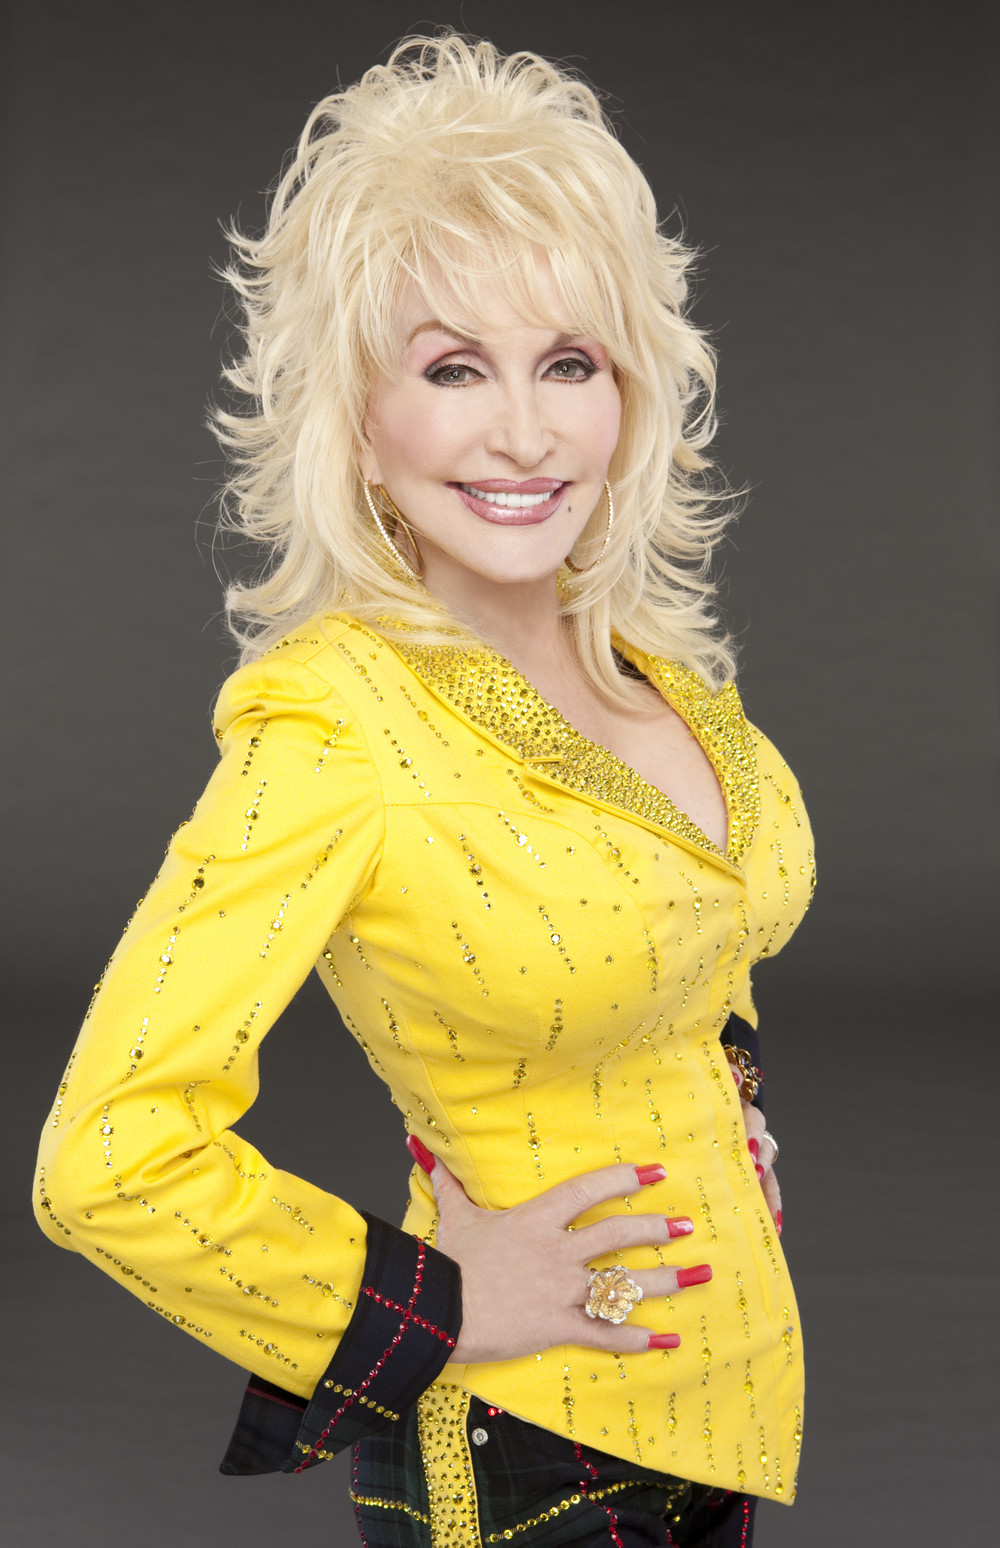 dolly parton on spotify